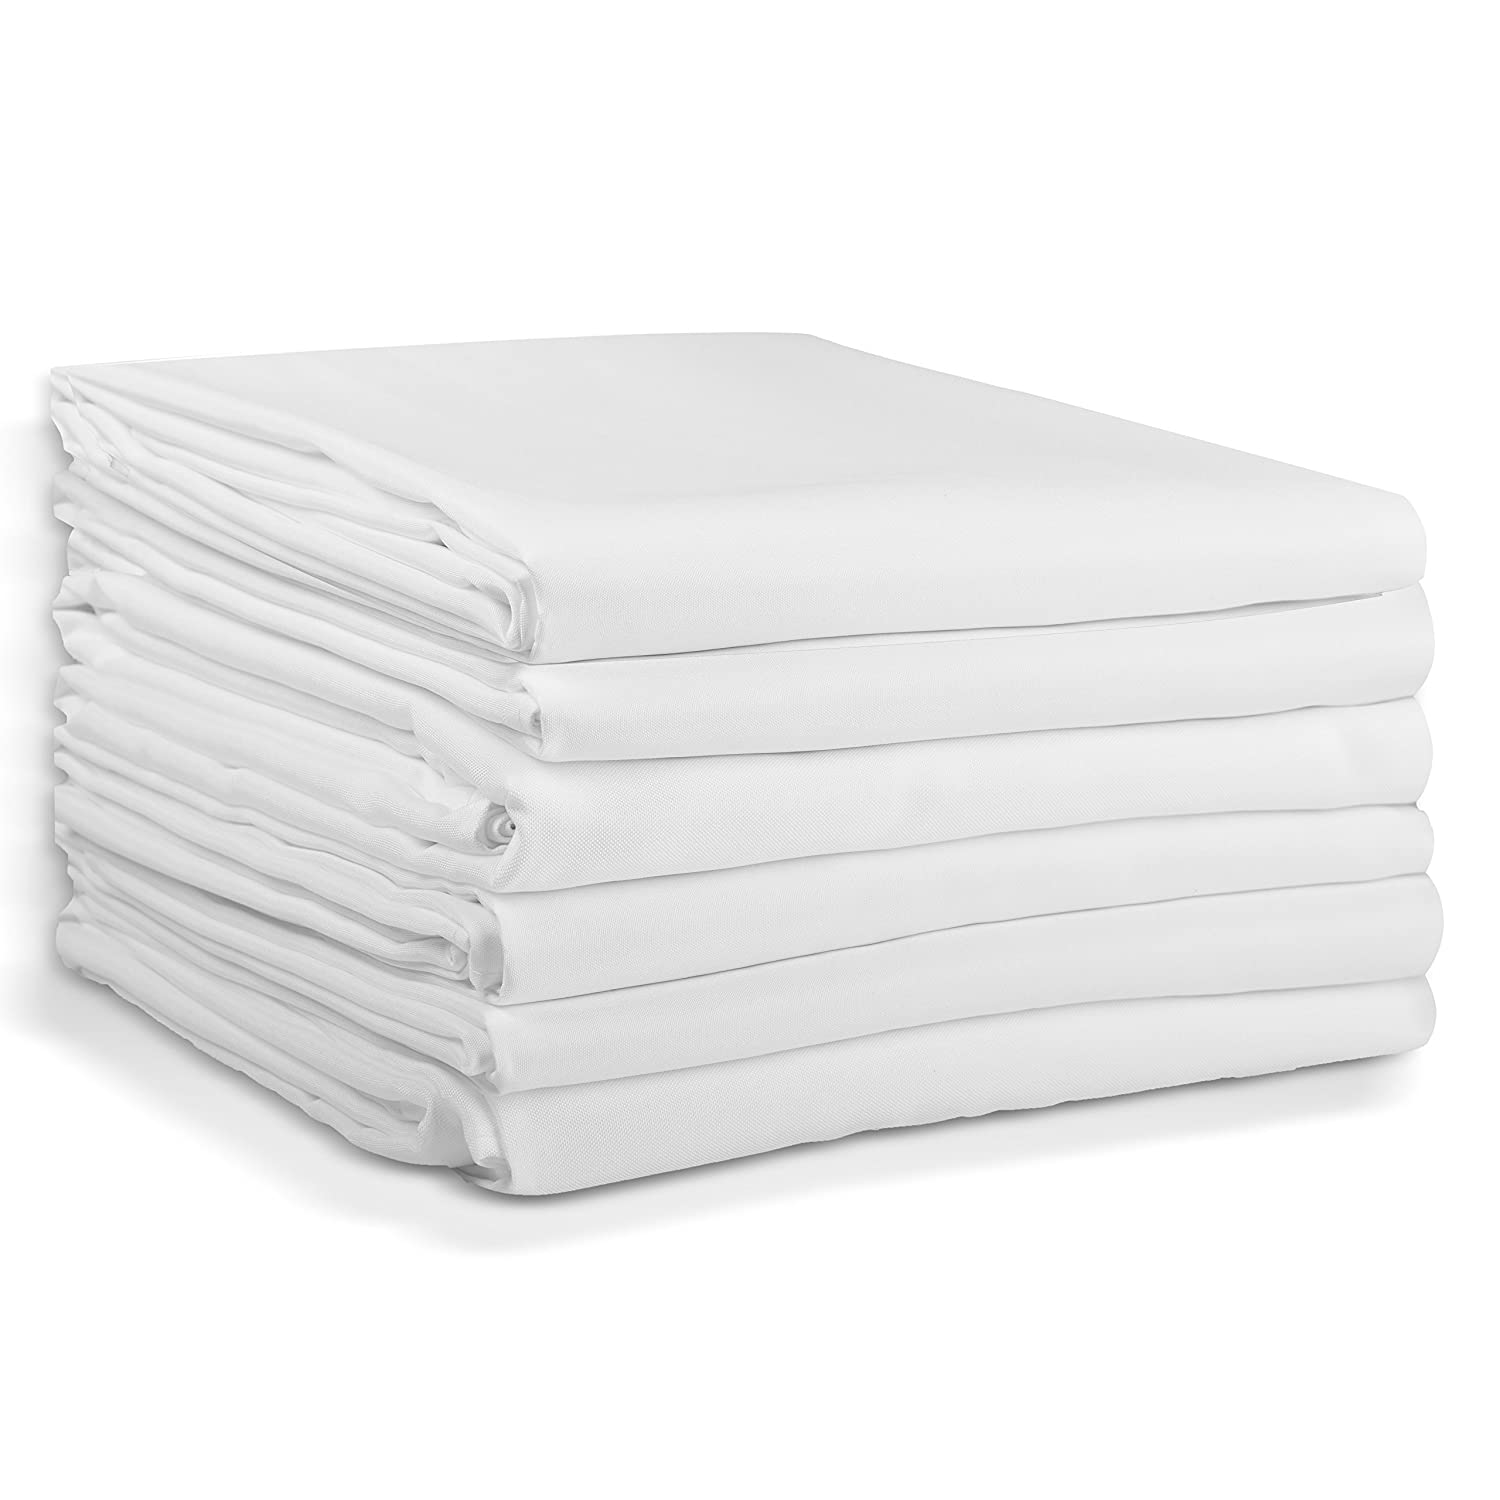 120 Inch Diameter White 100 Polyester Banquet Wedding Party Picnic Circle Table Cloths Emartinc 6 Pack Emart Round Tablecloth Tablecloths Kitchen Table Linens